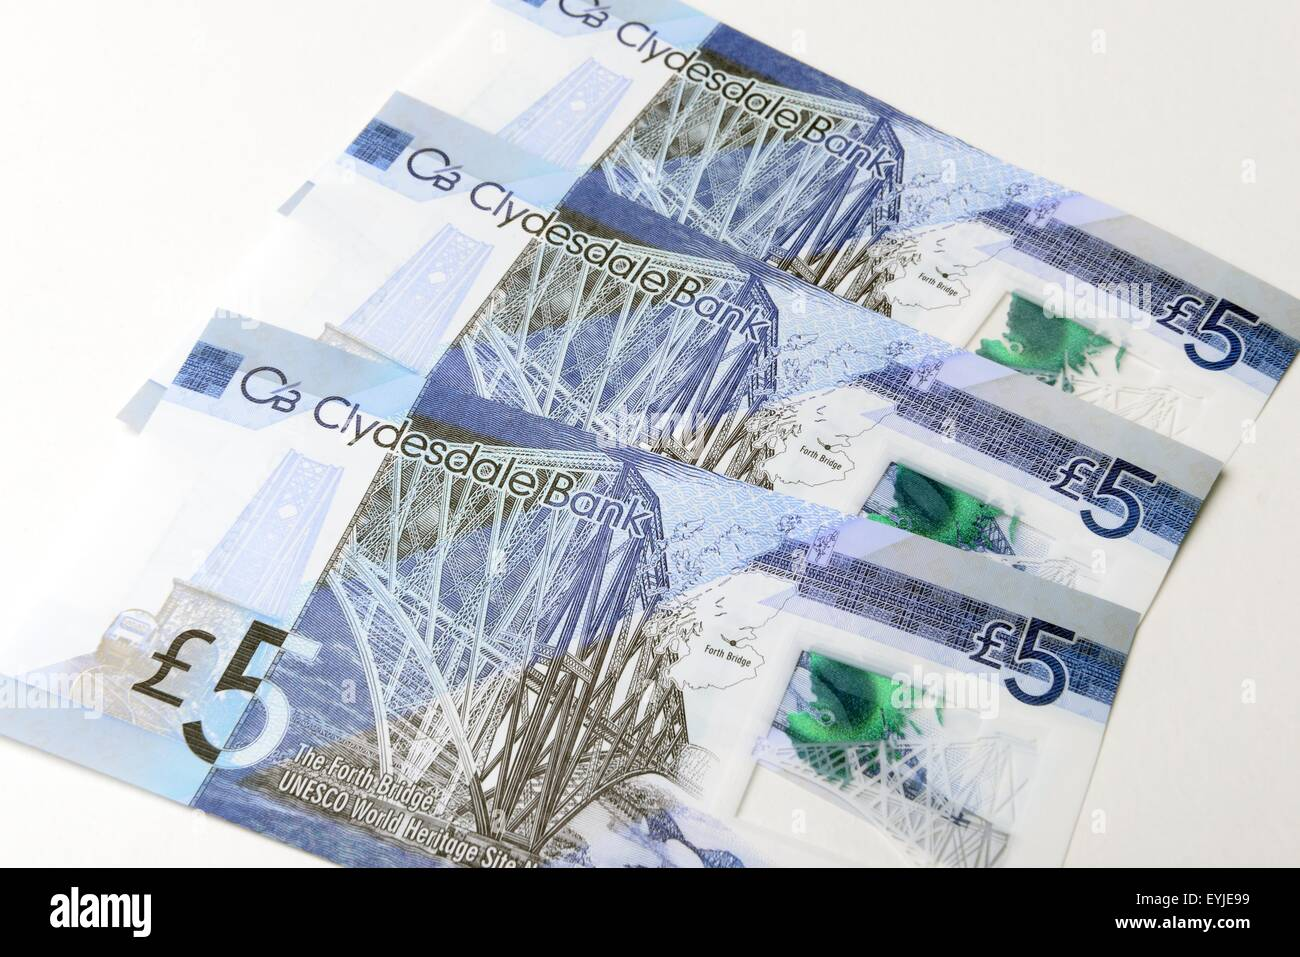 Clydesdale bank plastic £5 notes showing the newly designated world heritage Forth rail bridge in Scotland, - Stock Image